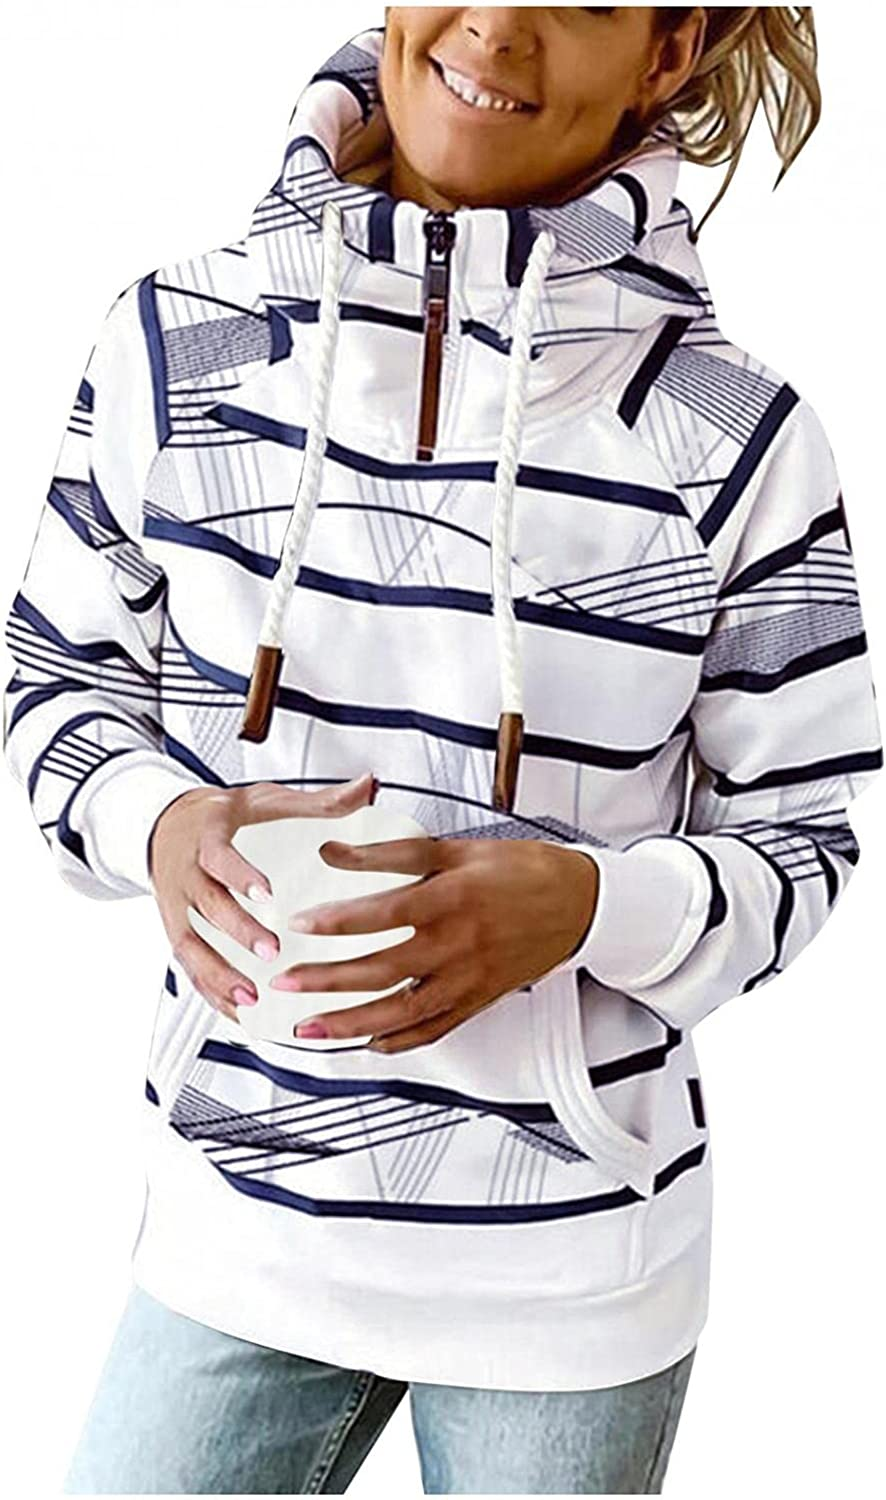 Gibobby Hooded Sweatshirts for Women 1/4 Zipper Drawstring Pullover Casual Button Pocket Hoodies Long Sleeve Stripe Tops